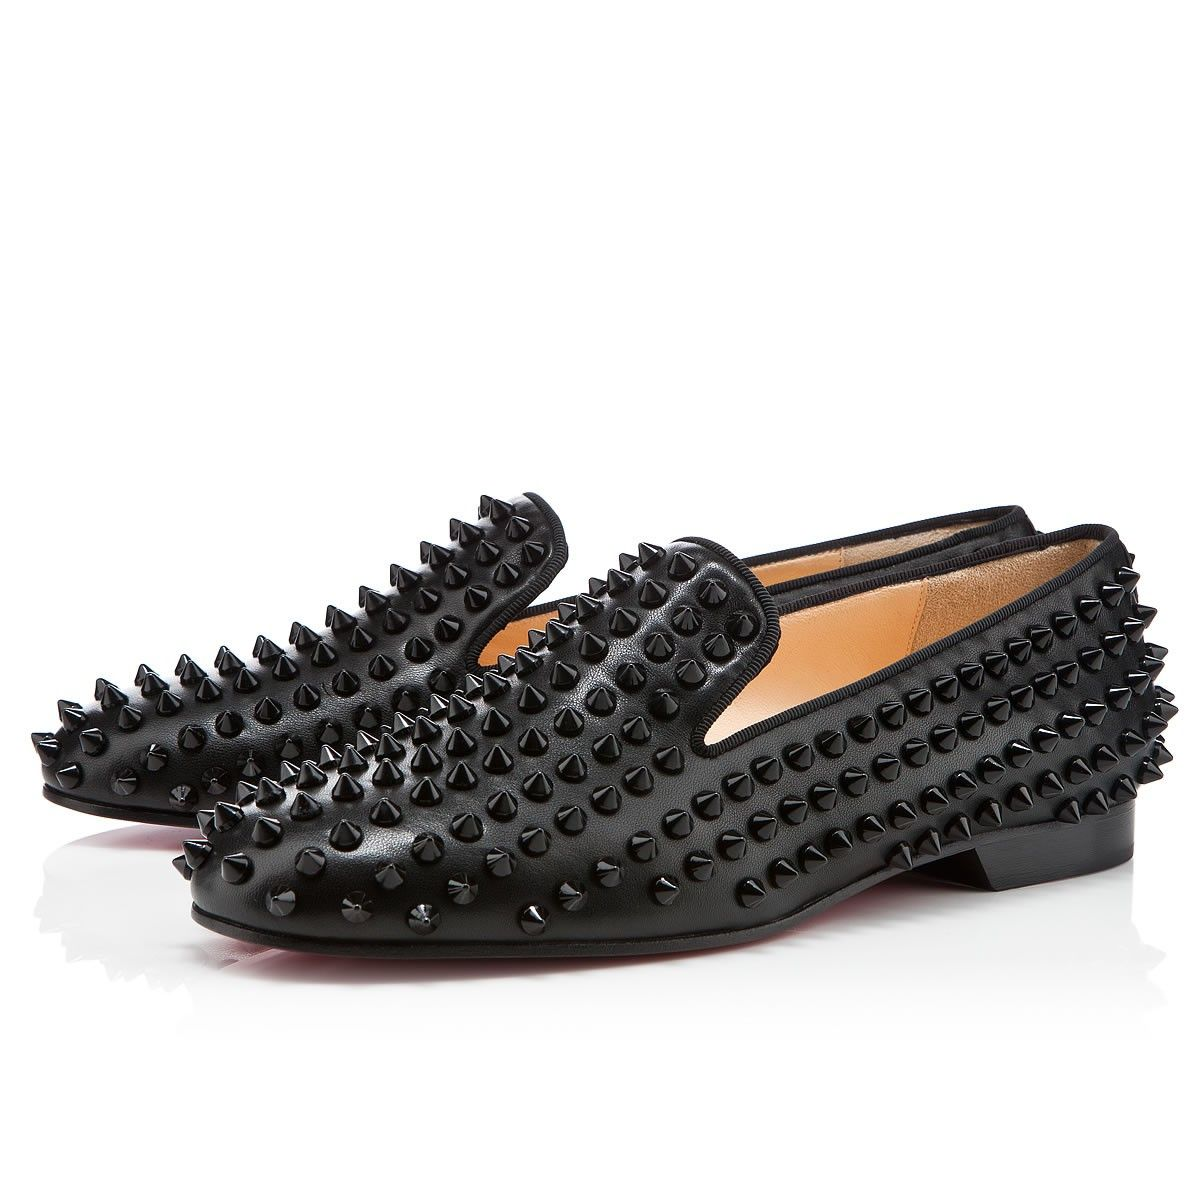 05593da4302d Rolling spikes flat black loafers by Christian Louboutin